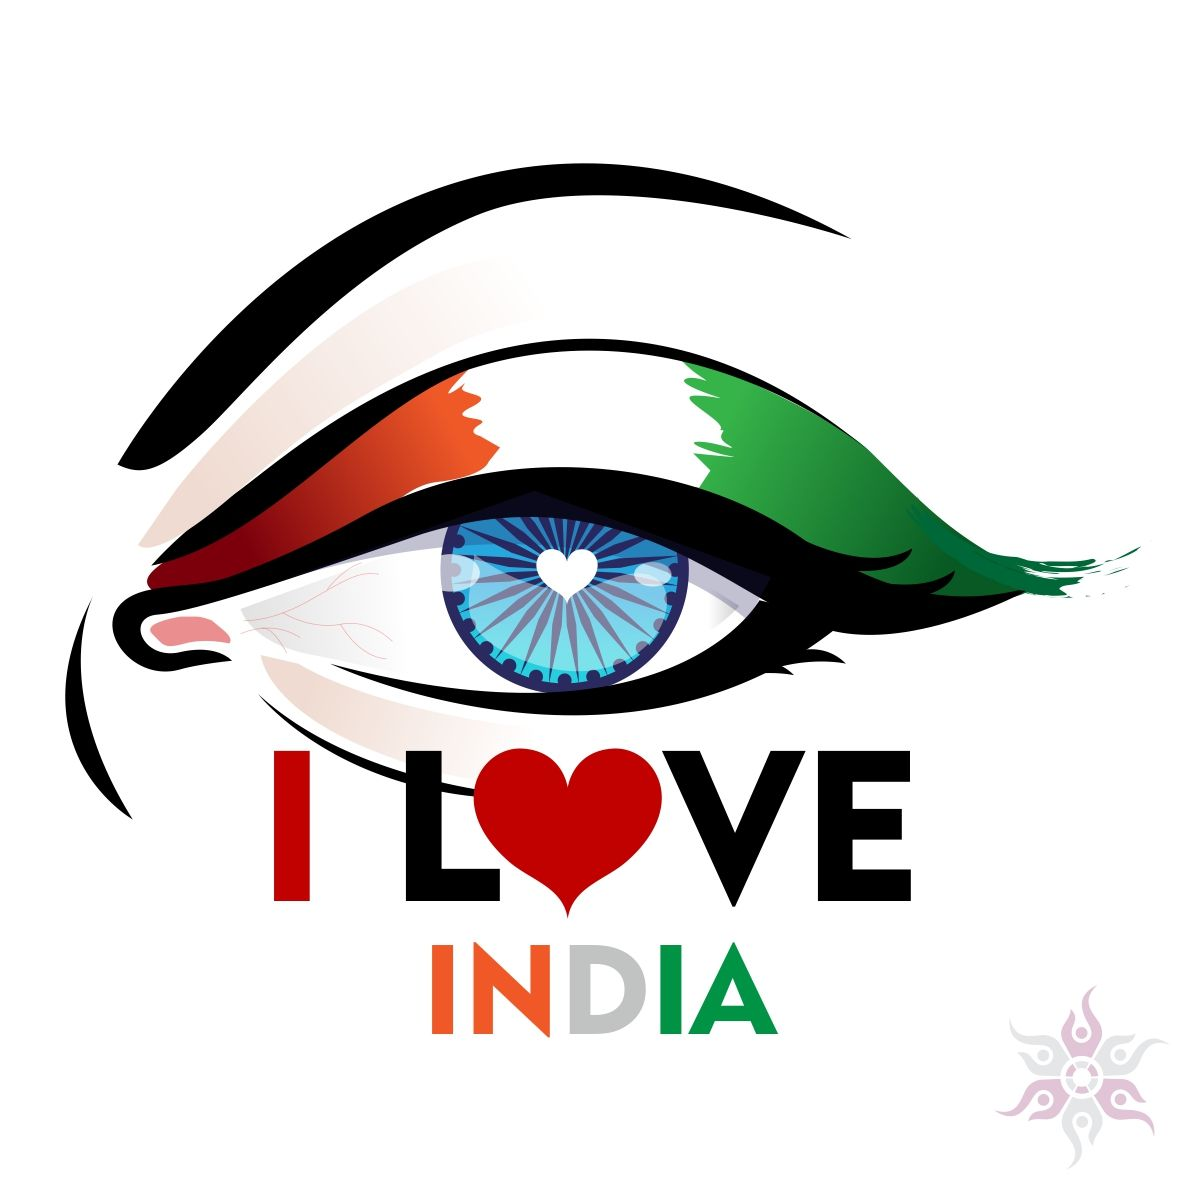 I am Proud to be Indian, do you? | Indian flag images, Indian flag  wallpaper, Independence day images